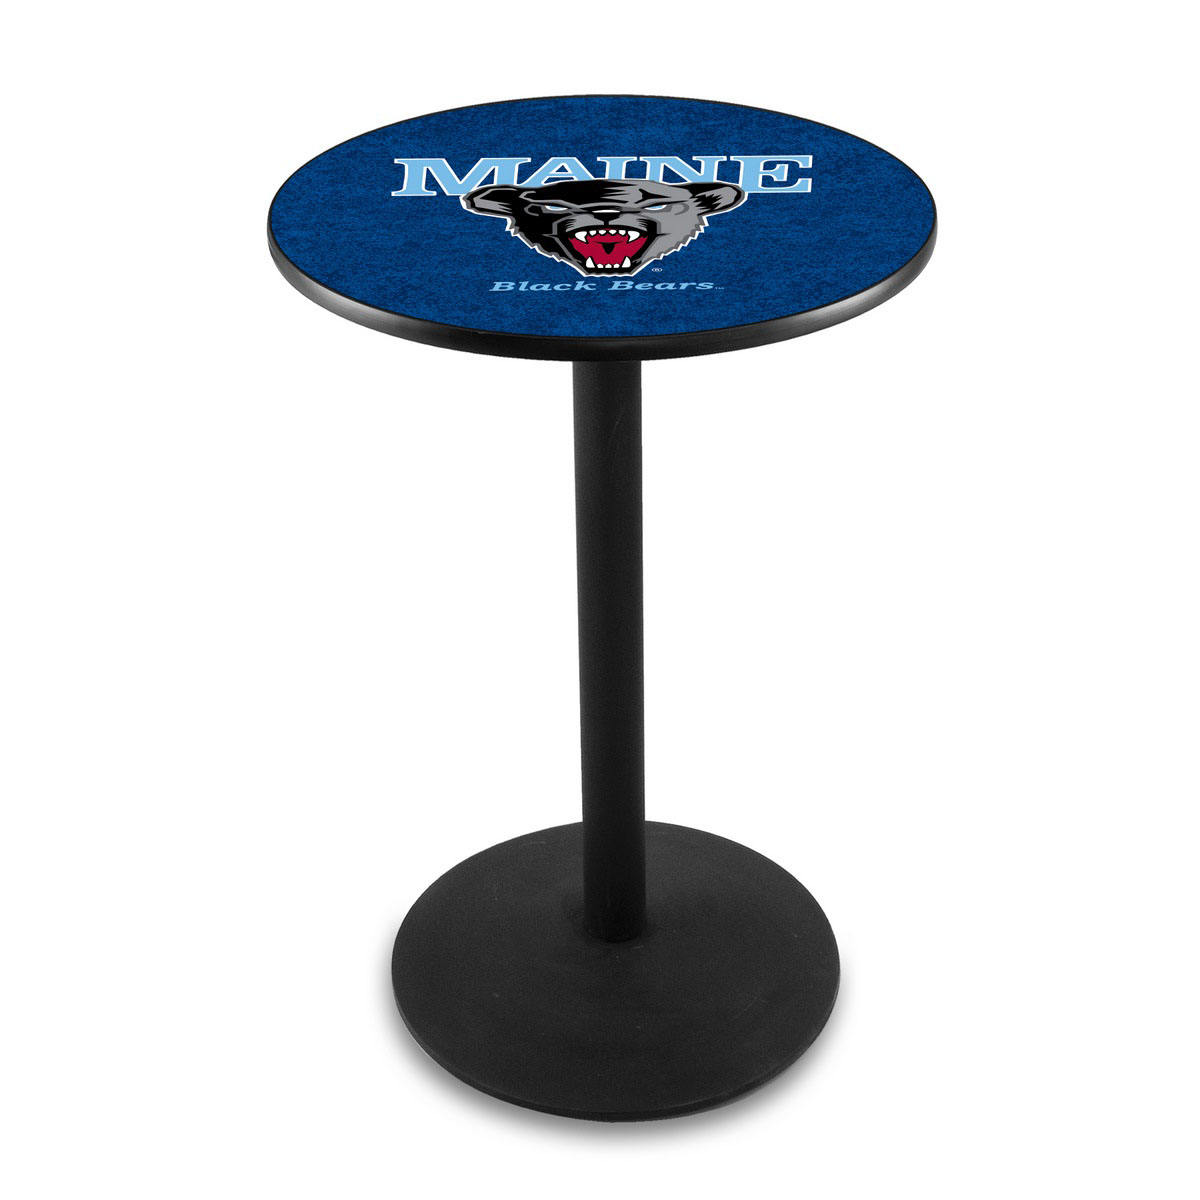 Remarkable University Maine Logo Pub Bar Table Round Stand Product Photo